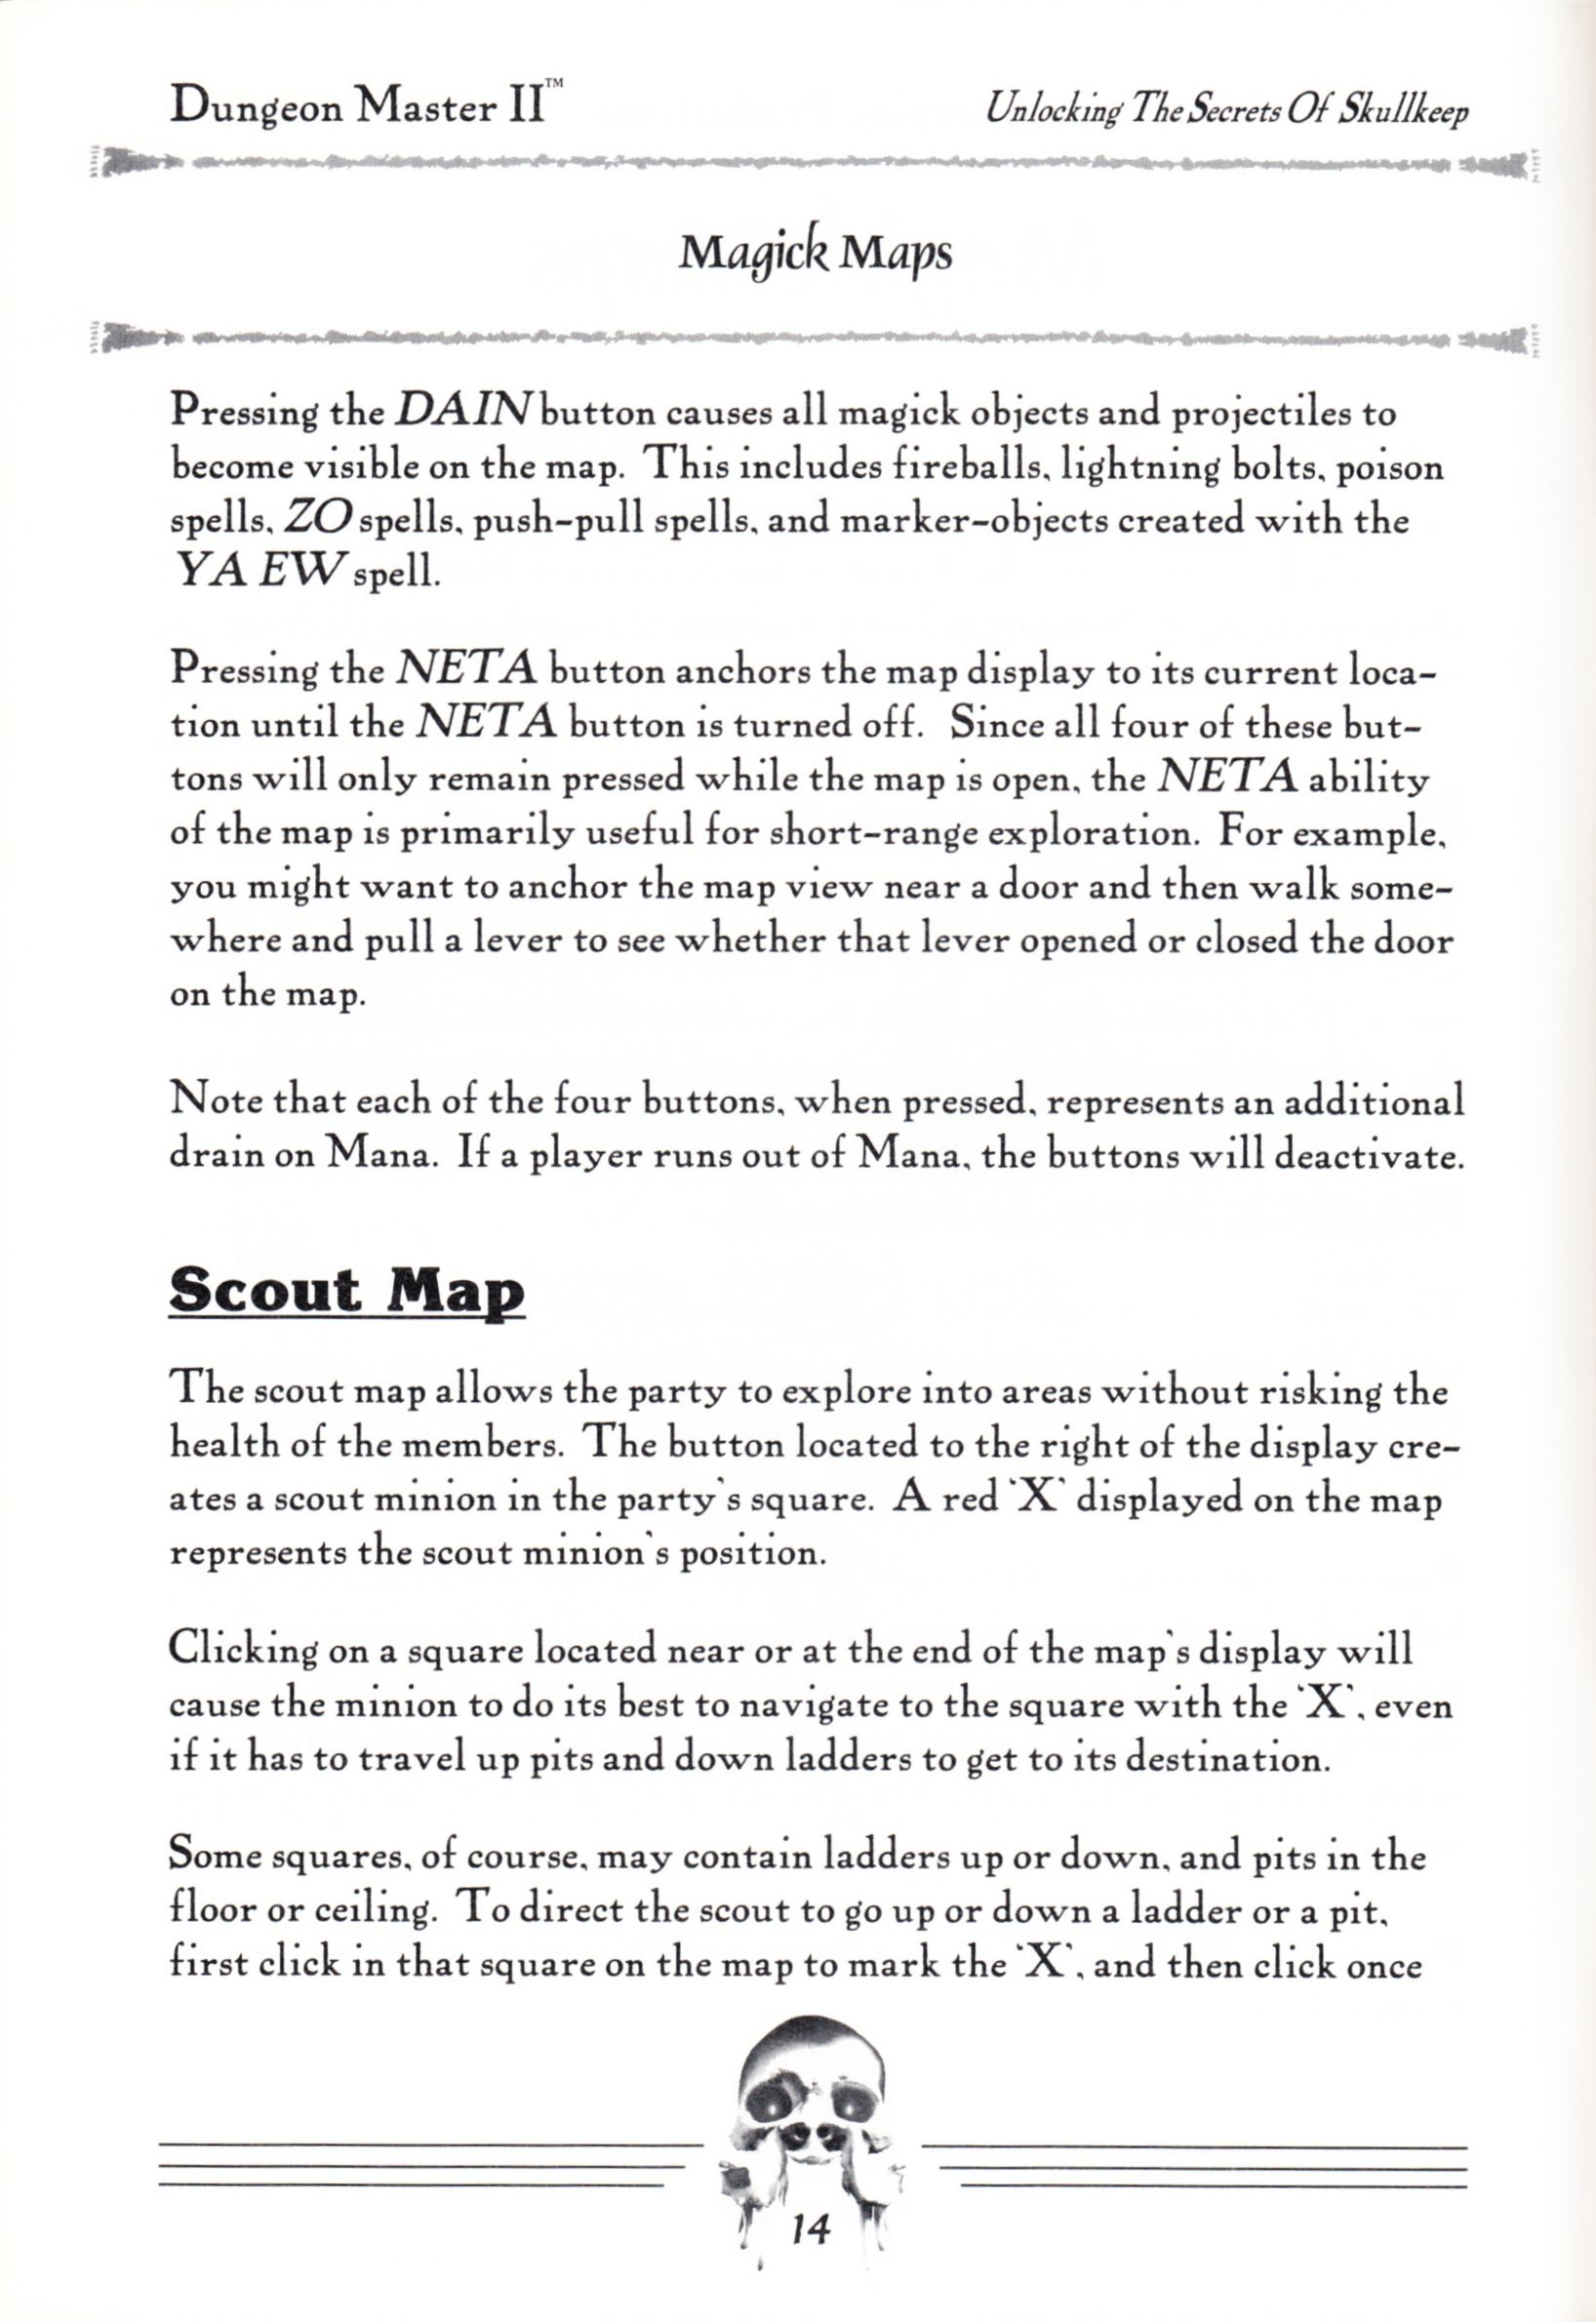 Hint Book - Dungeon Master II Clue Book - US - Page 016 - Scan